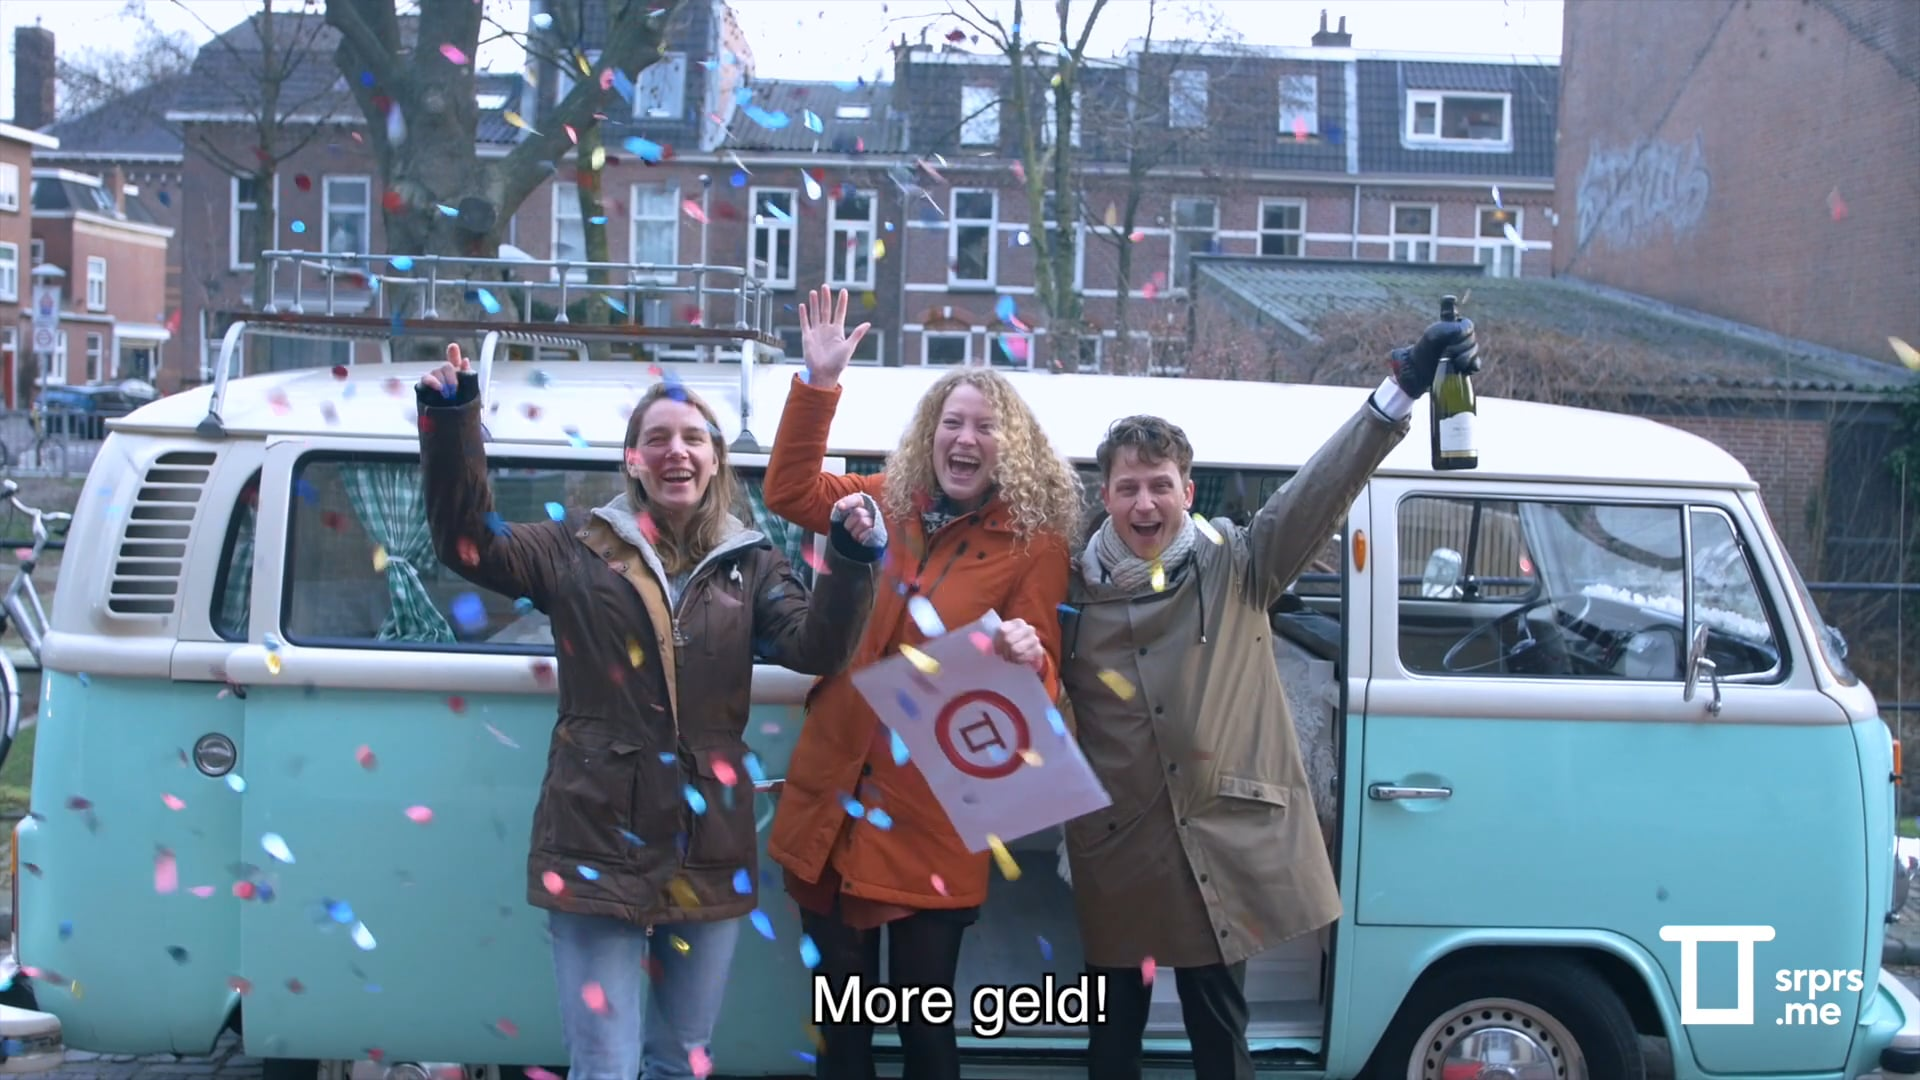 sprs.me - Give away actie